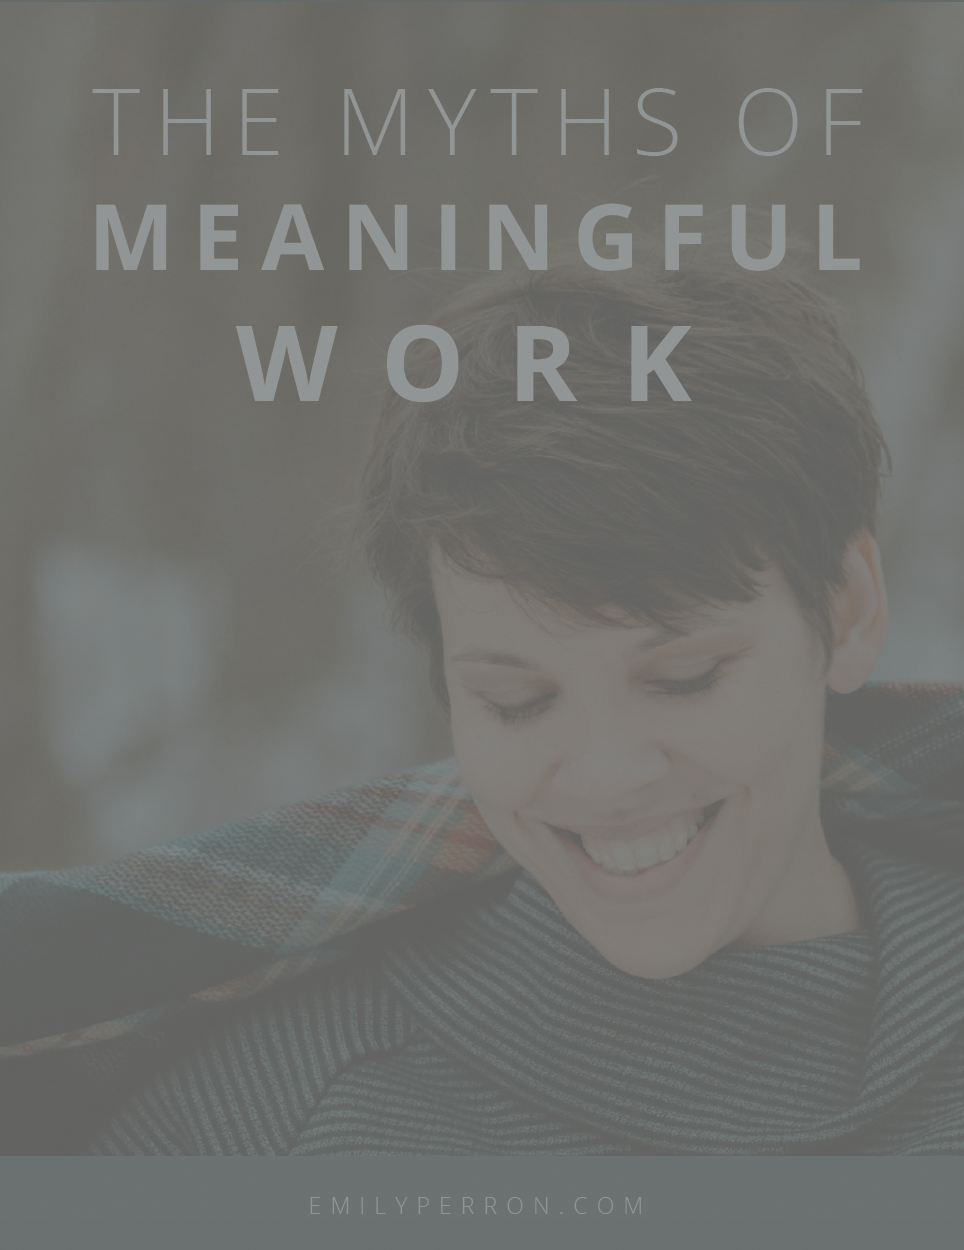 The Myths of Meaningful Work ebook hidden.png